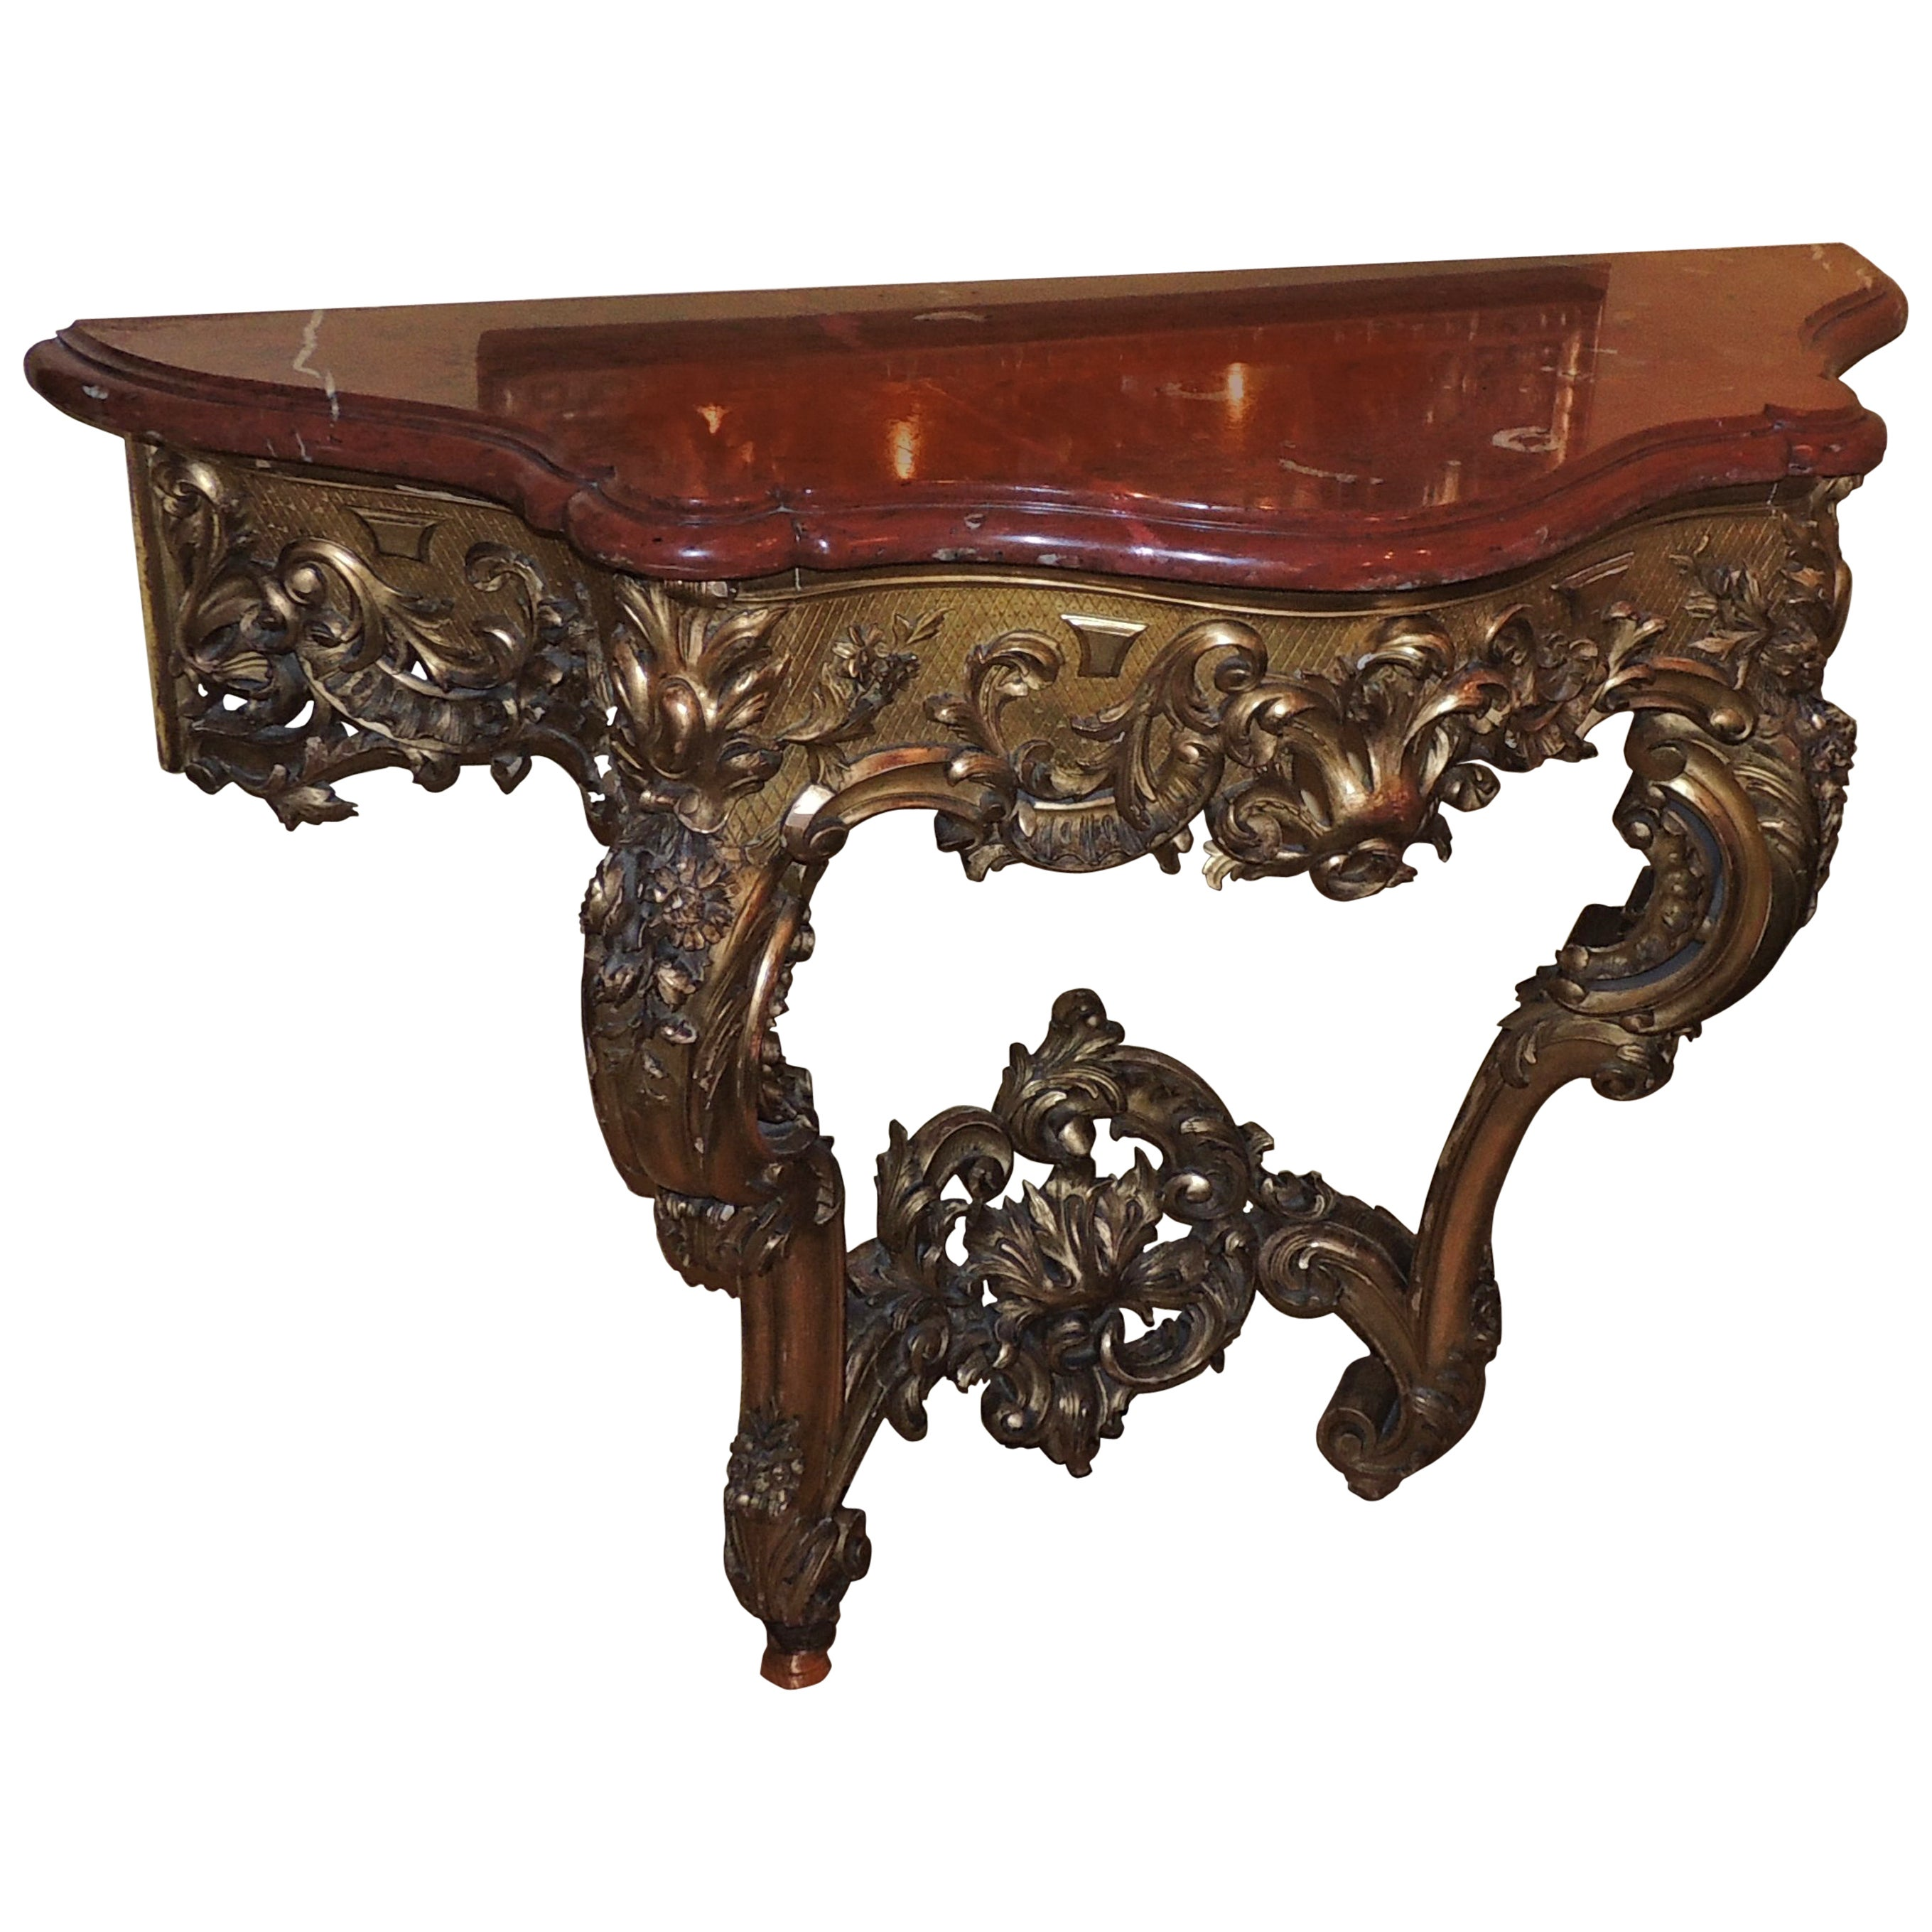 Elegant French 19th Century Carved Giltwood Console with Rouge Marble Top